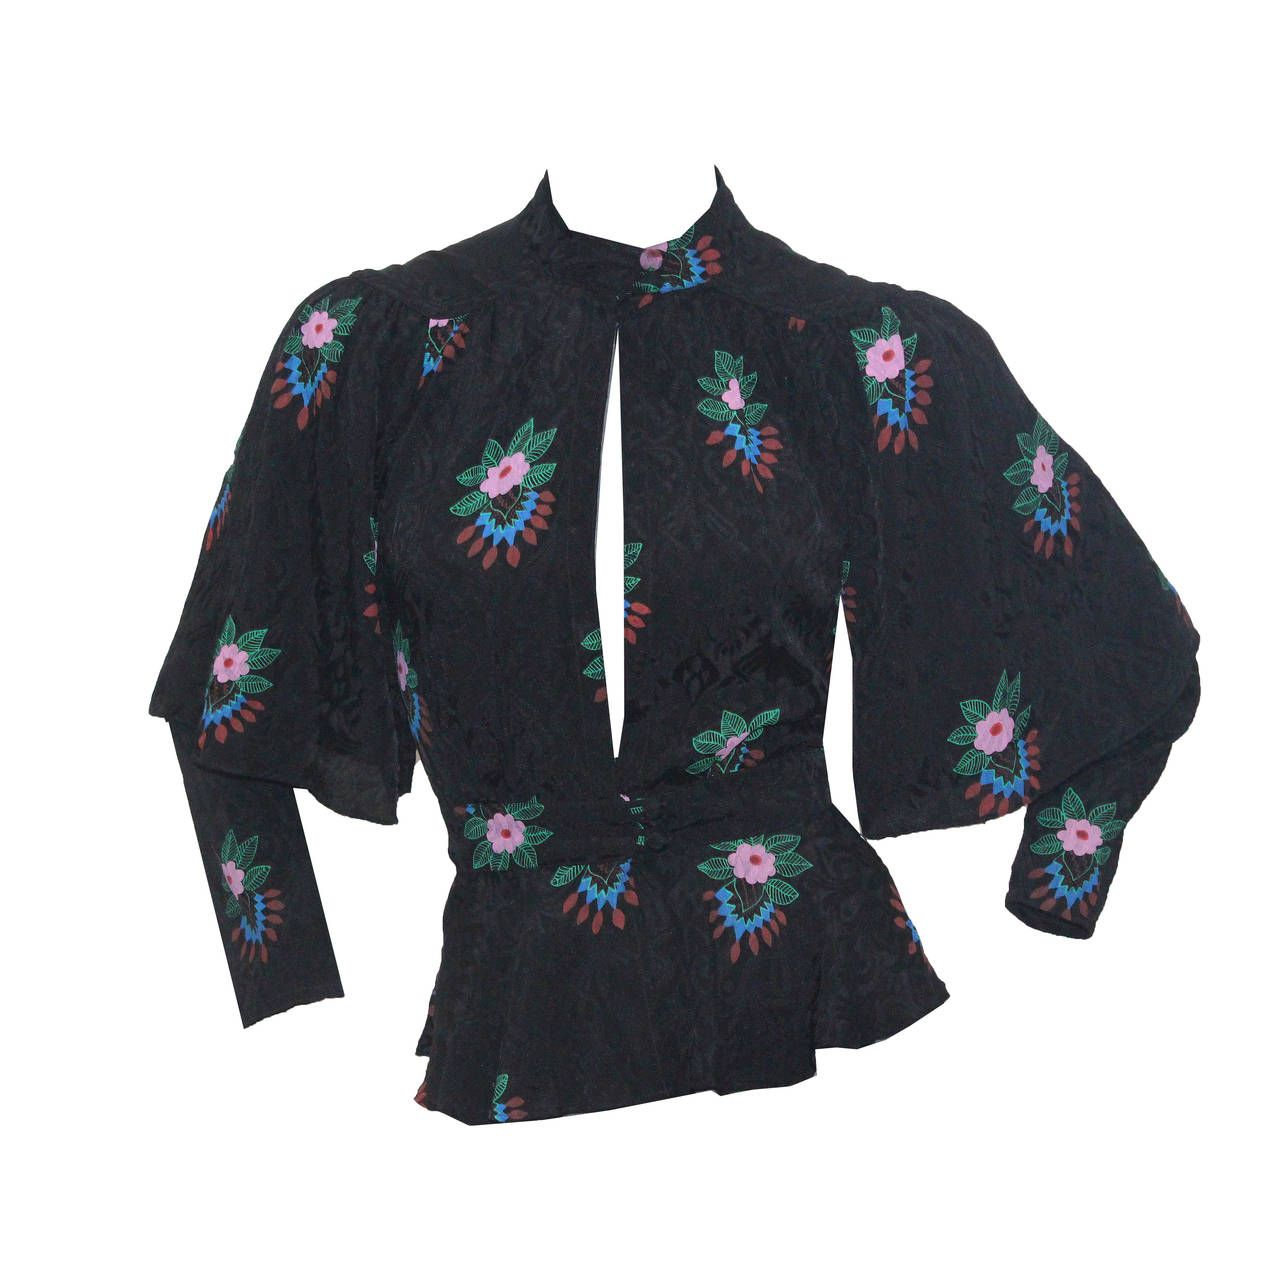 1970s Ossie Clark Peekaboo Blouse With 'Indian Bouquet' Print by Celia Birtwell